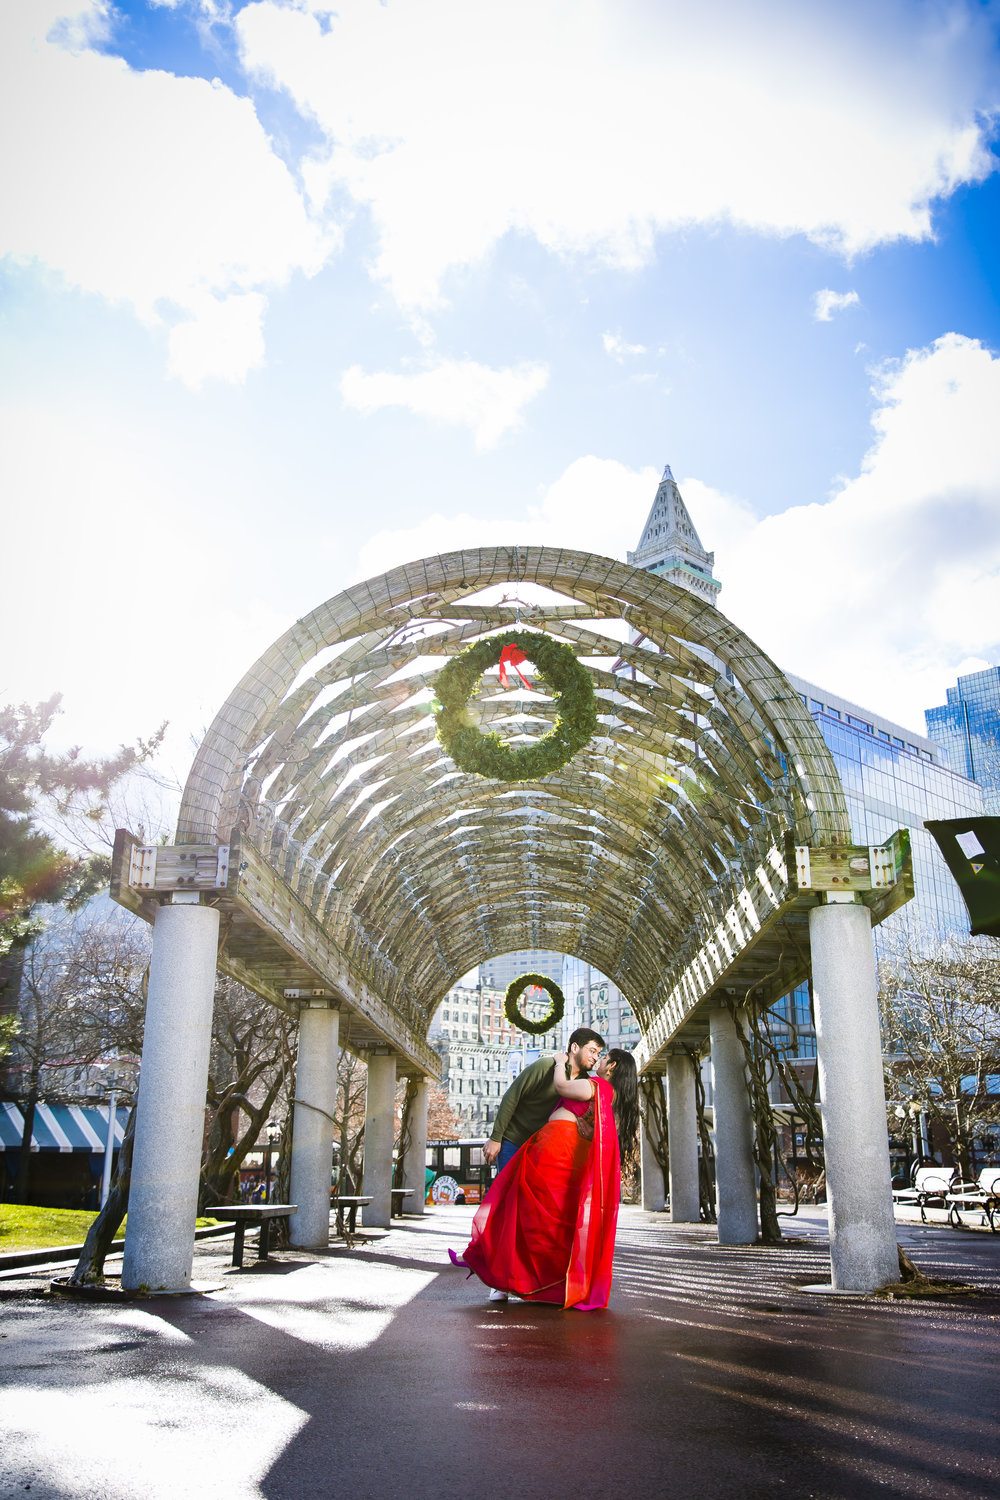 314A0855 Giovanni The Photographer Boston Engagment Photography Waterfront - Christopher Columbus Park - Public GardenPhotography School.jpg